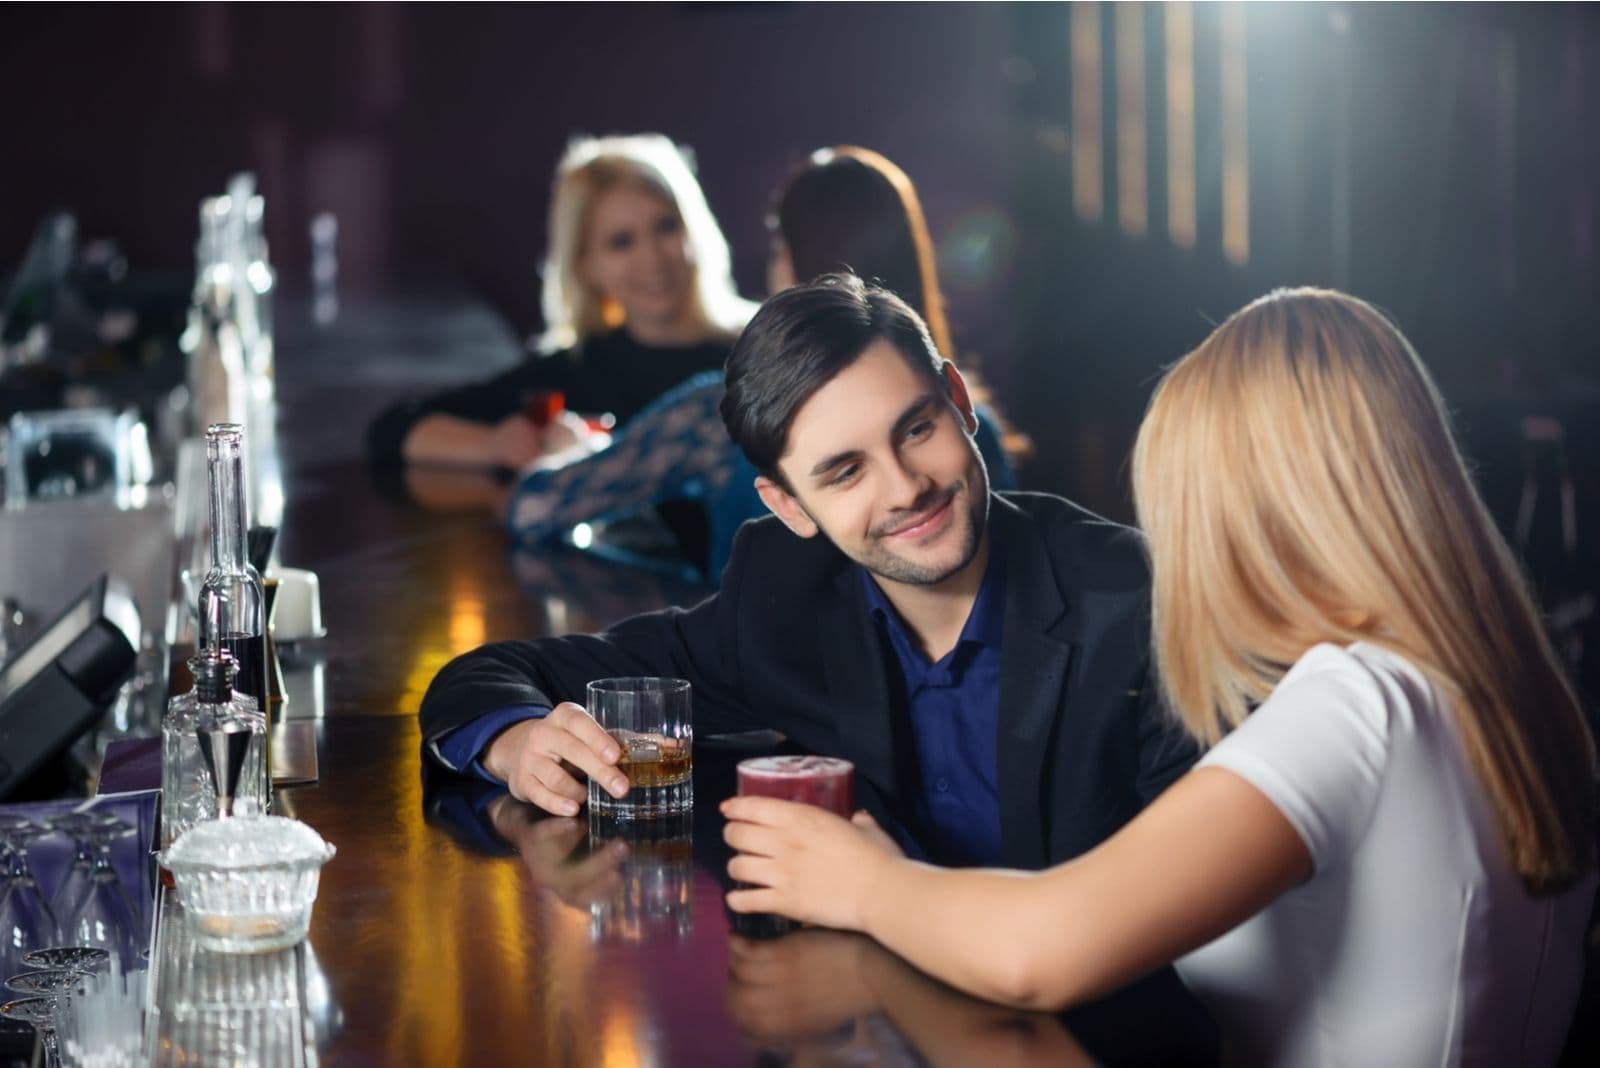 man and woman in the bar having a chat while drinking beer